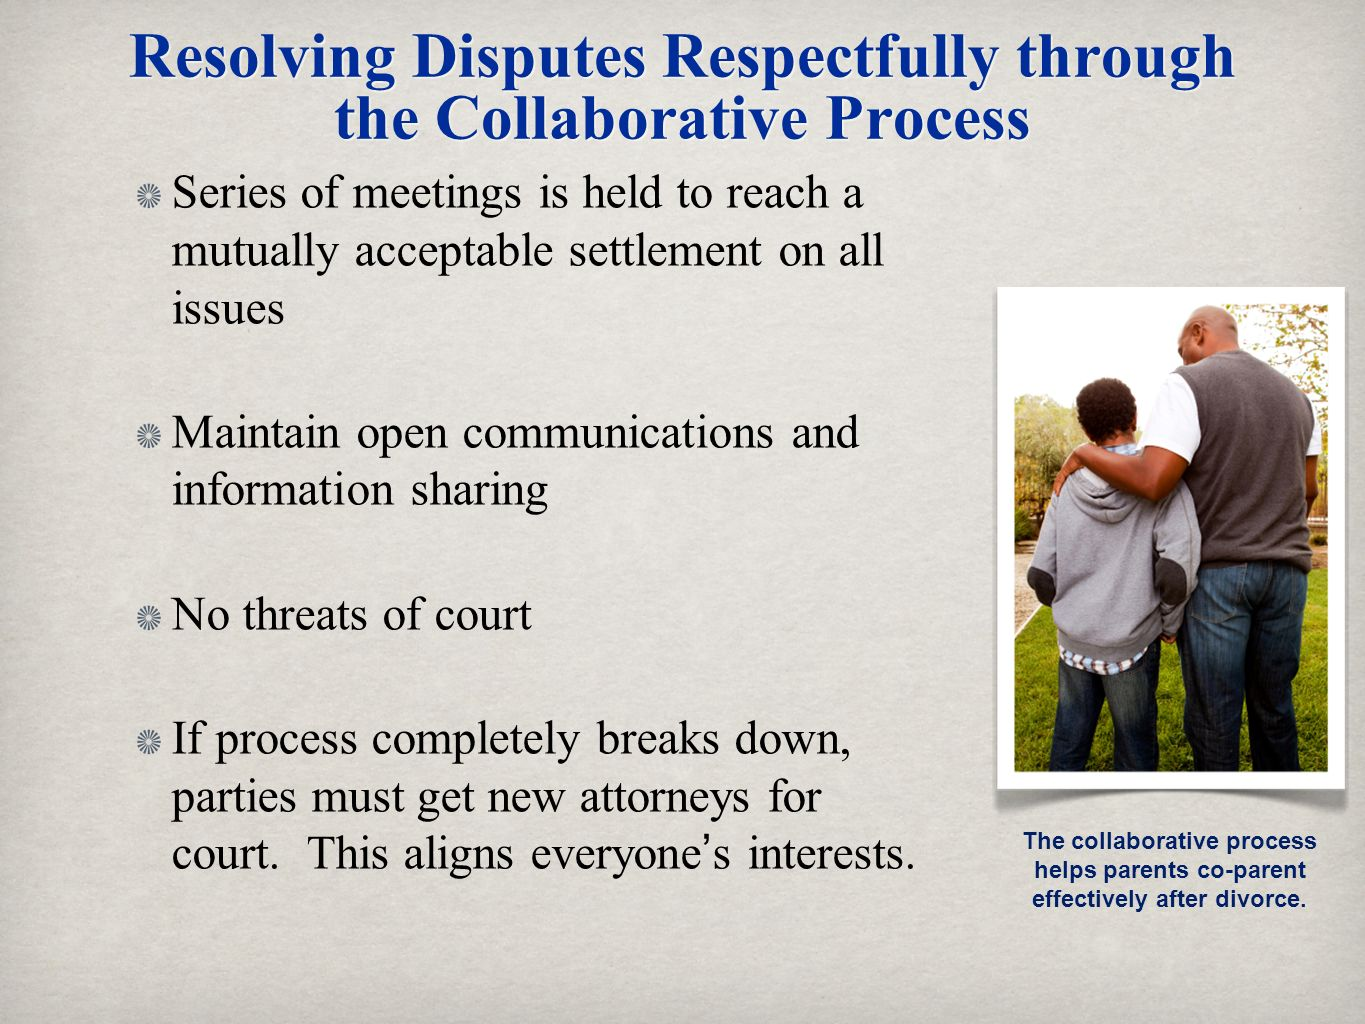 Resolving Disputes Respectfully through the Collaborative Process